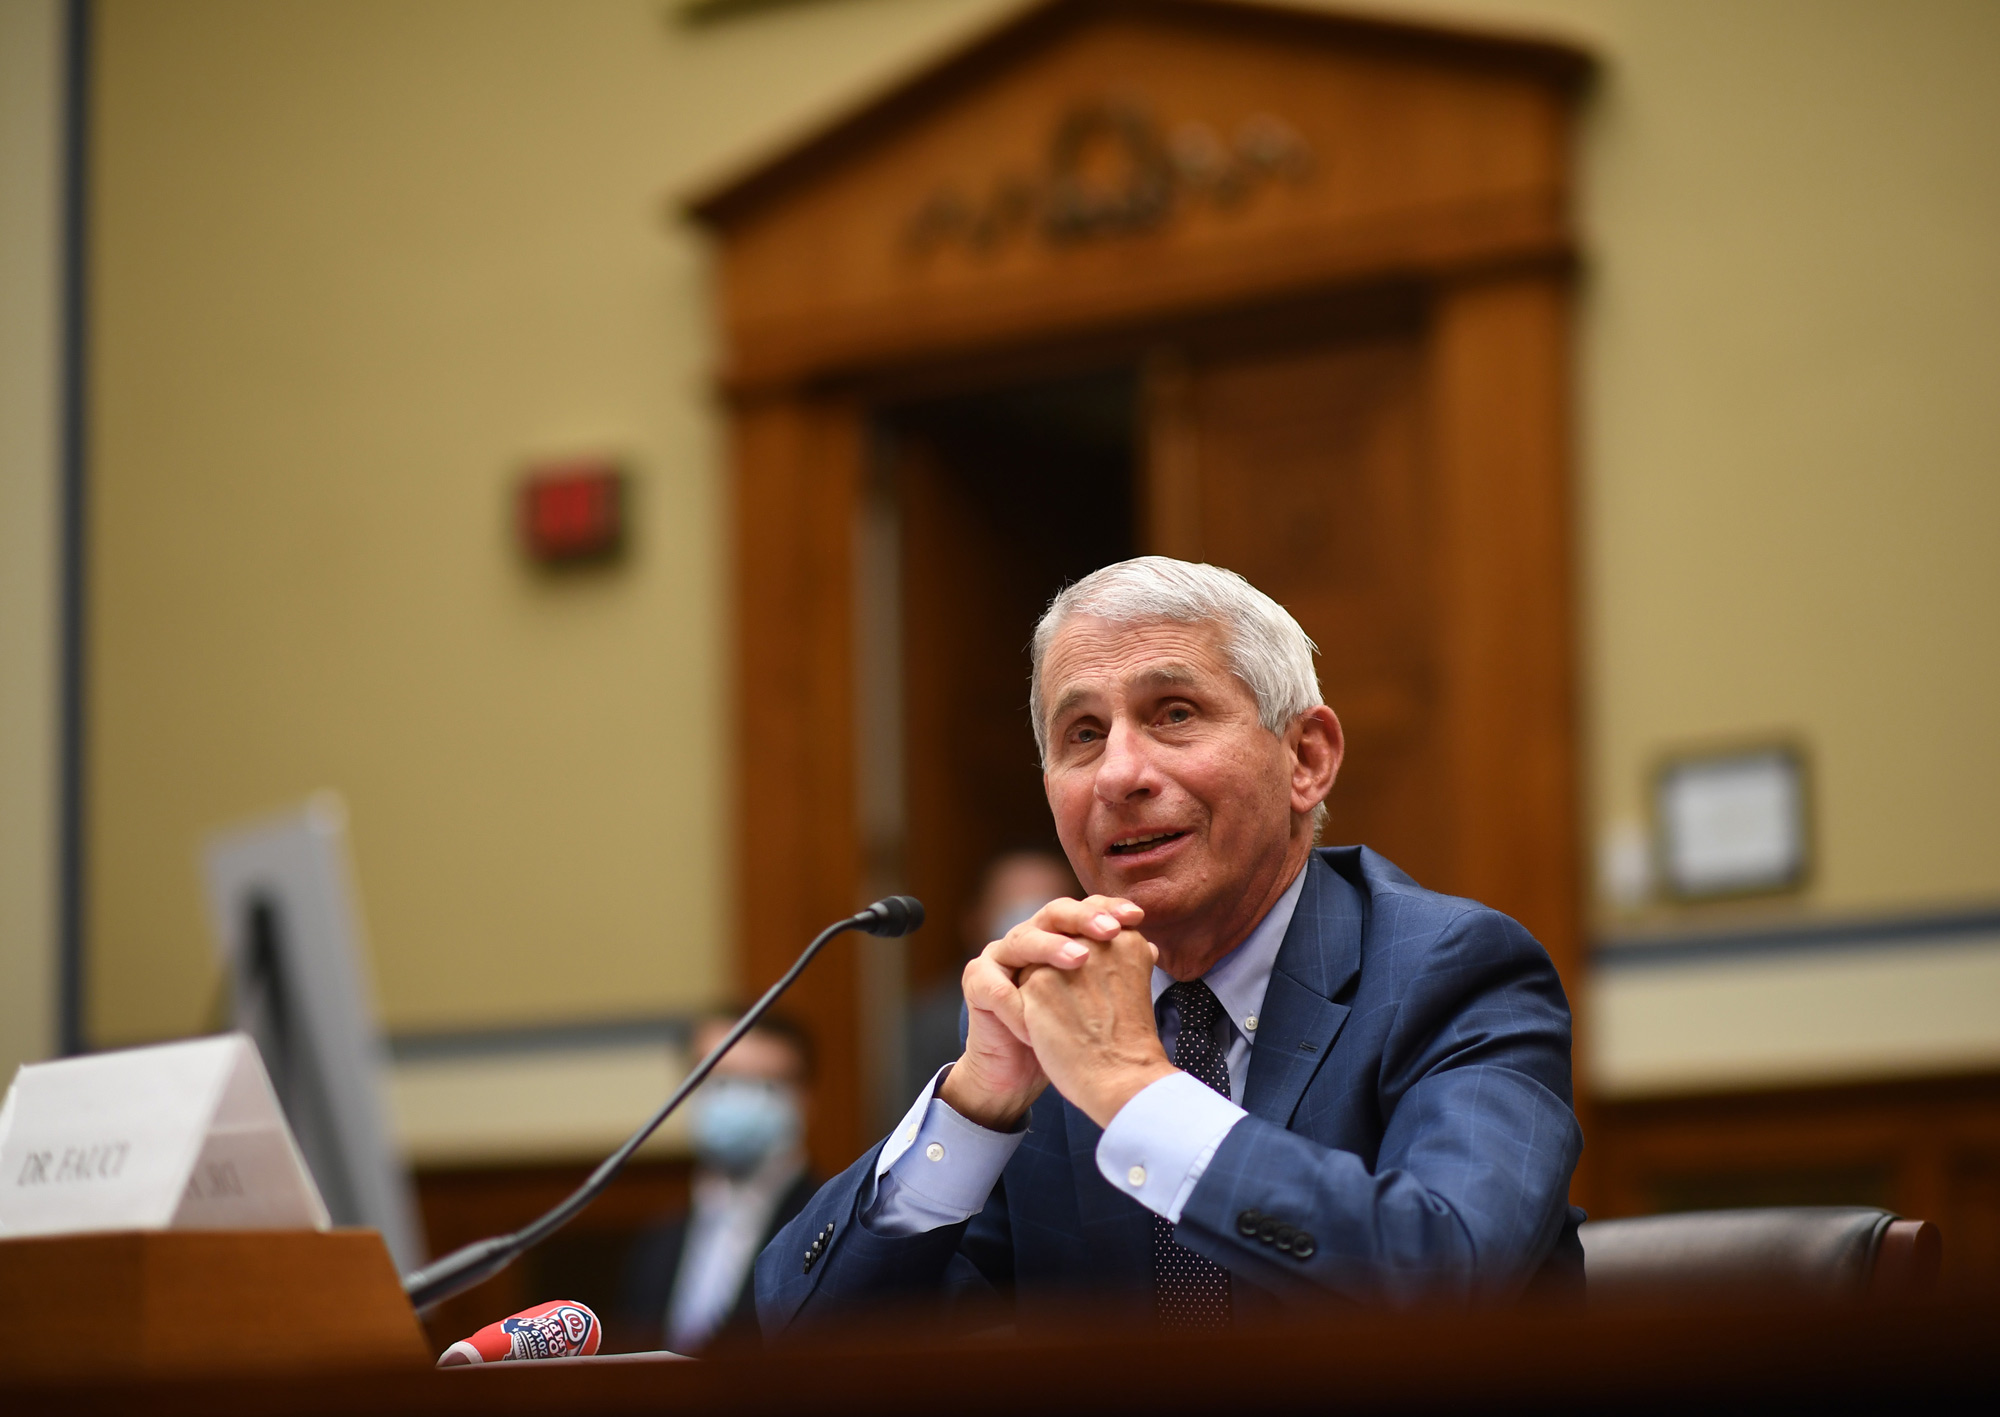 Dr. Anthony Fauci, director of the National Institute for Allergy and Infectious Diseases, testifies before a House Subcommittee on July 31 in Washington, DC.